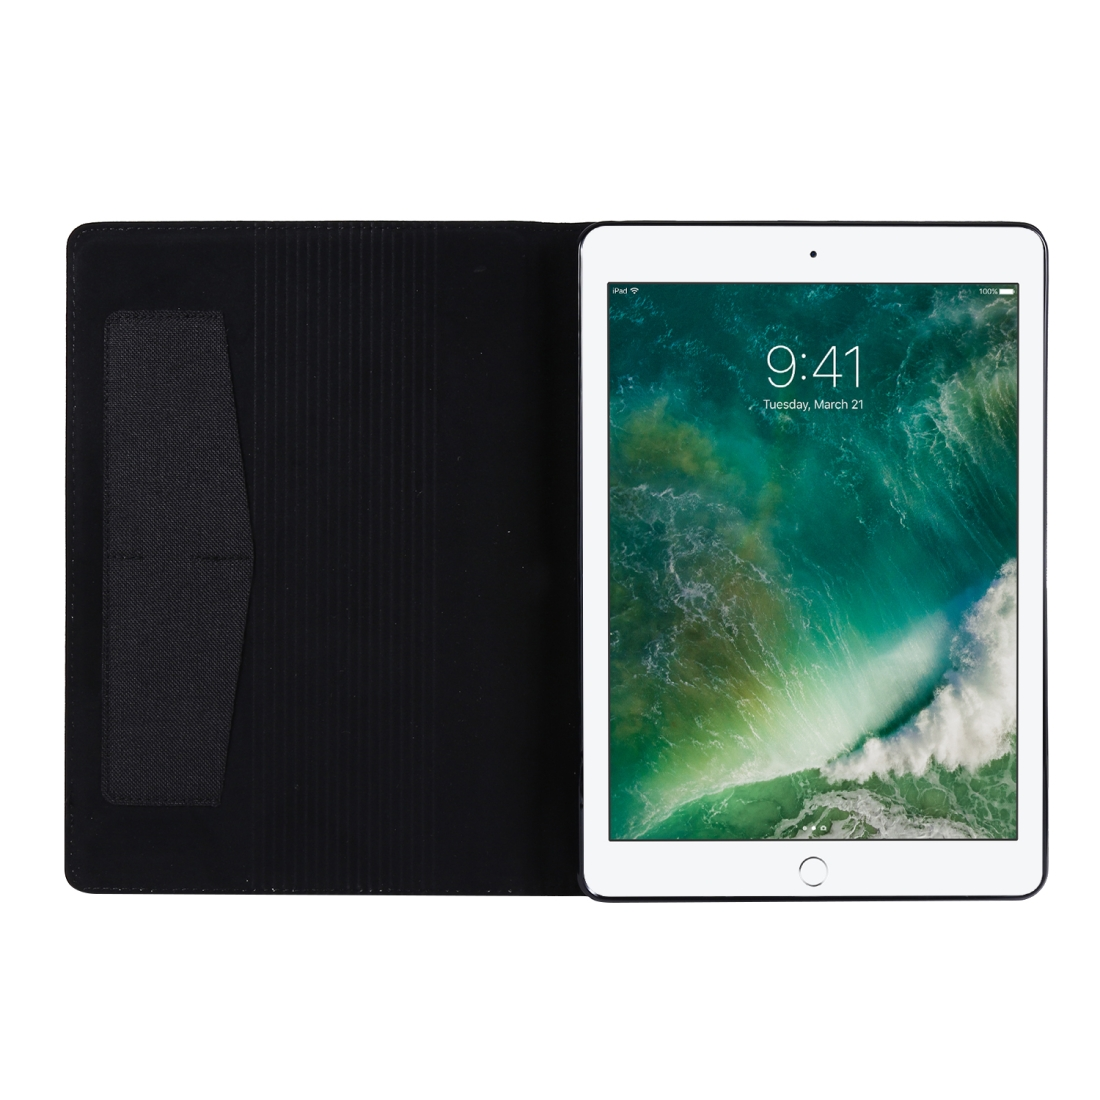 iPad 7th Generation Case (10.2 Inch) With A Durable Protective Fabric Design, Slim Profile (Black)